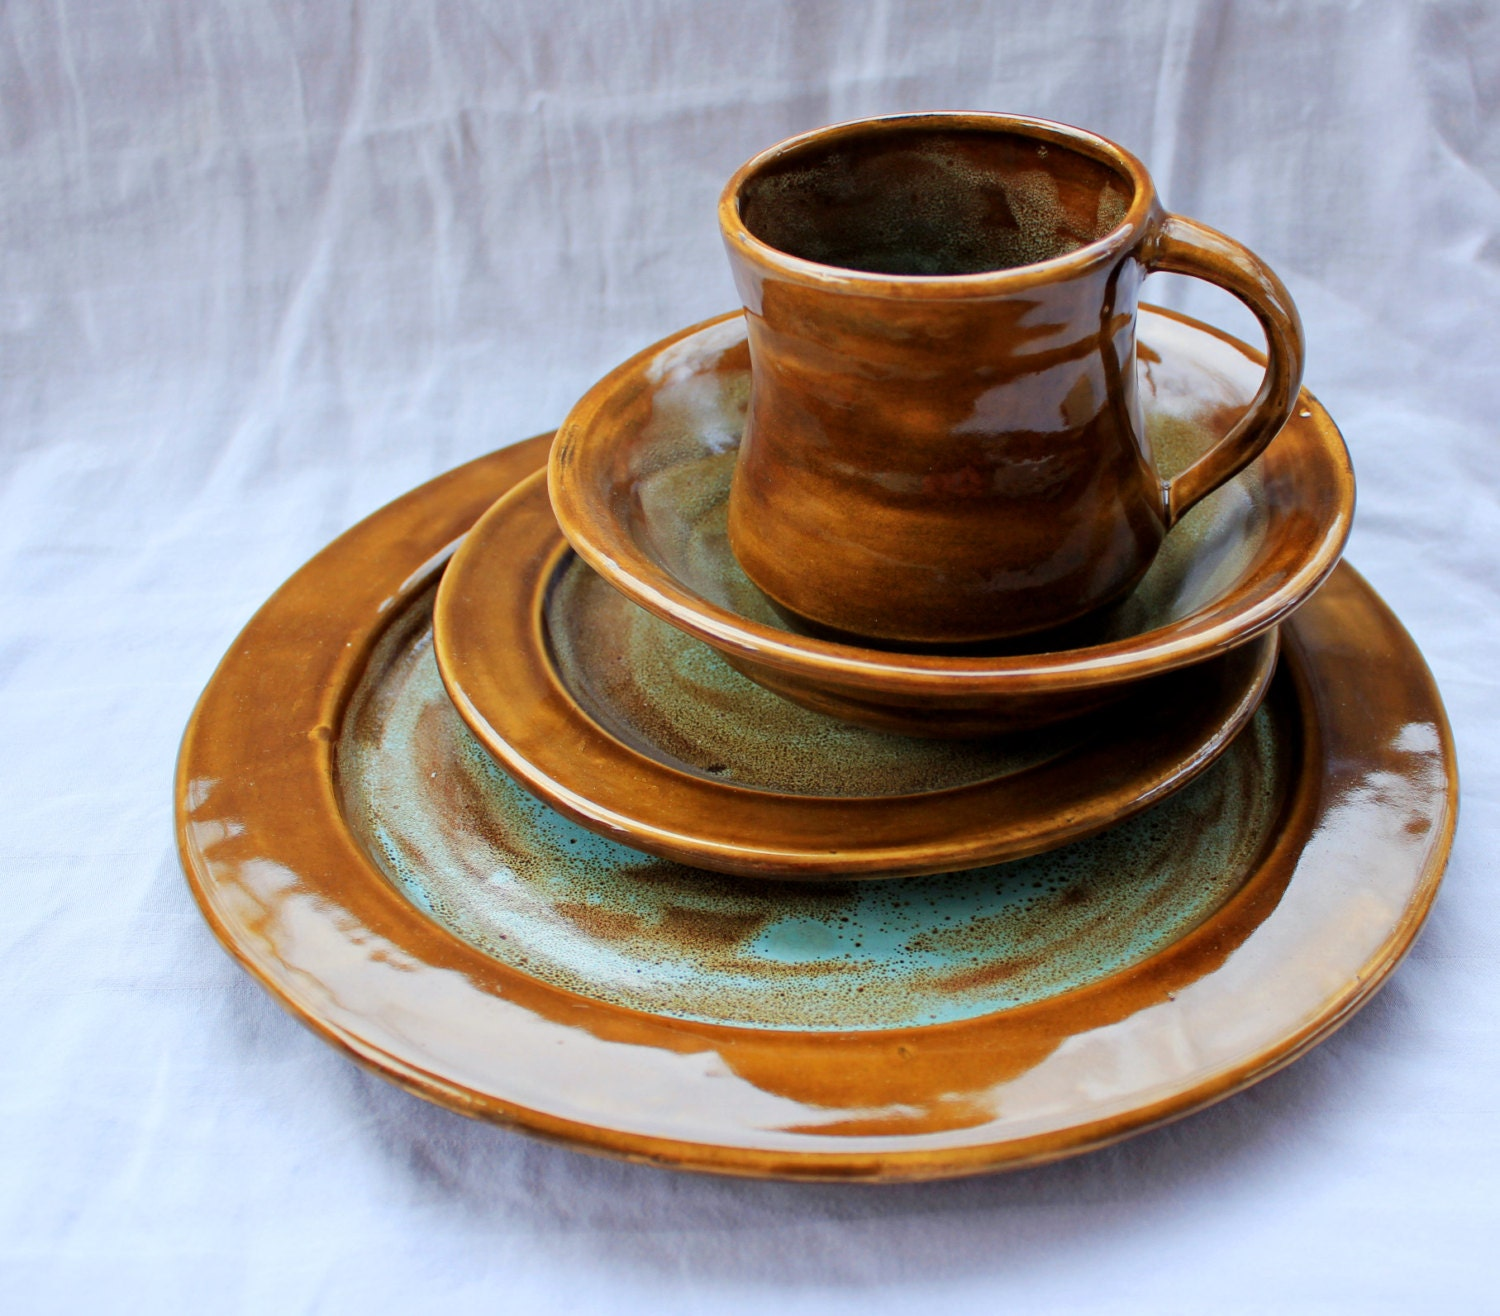 Art Deco Dinnerware Set Handmade Stoneware Pottery & Dinnerware Pottery - Castrophotos